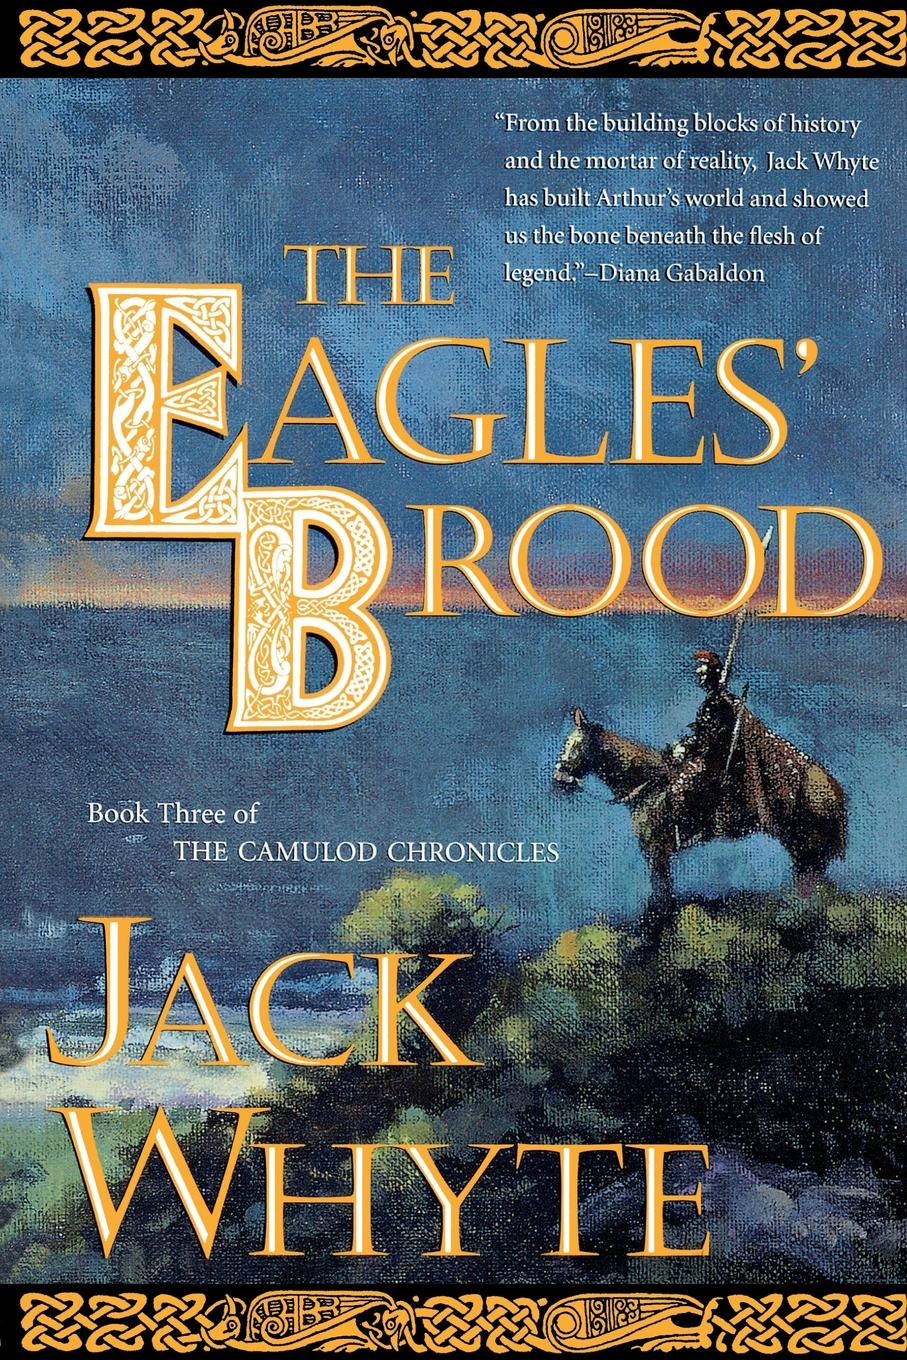 Jack Whyte The Eagles' Brood cody benjamin the eagles notebook